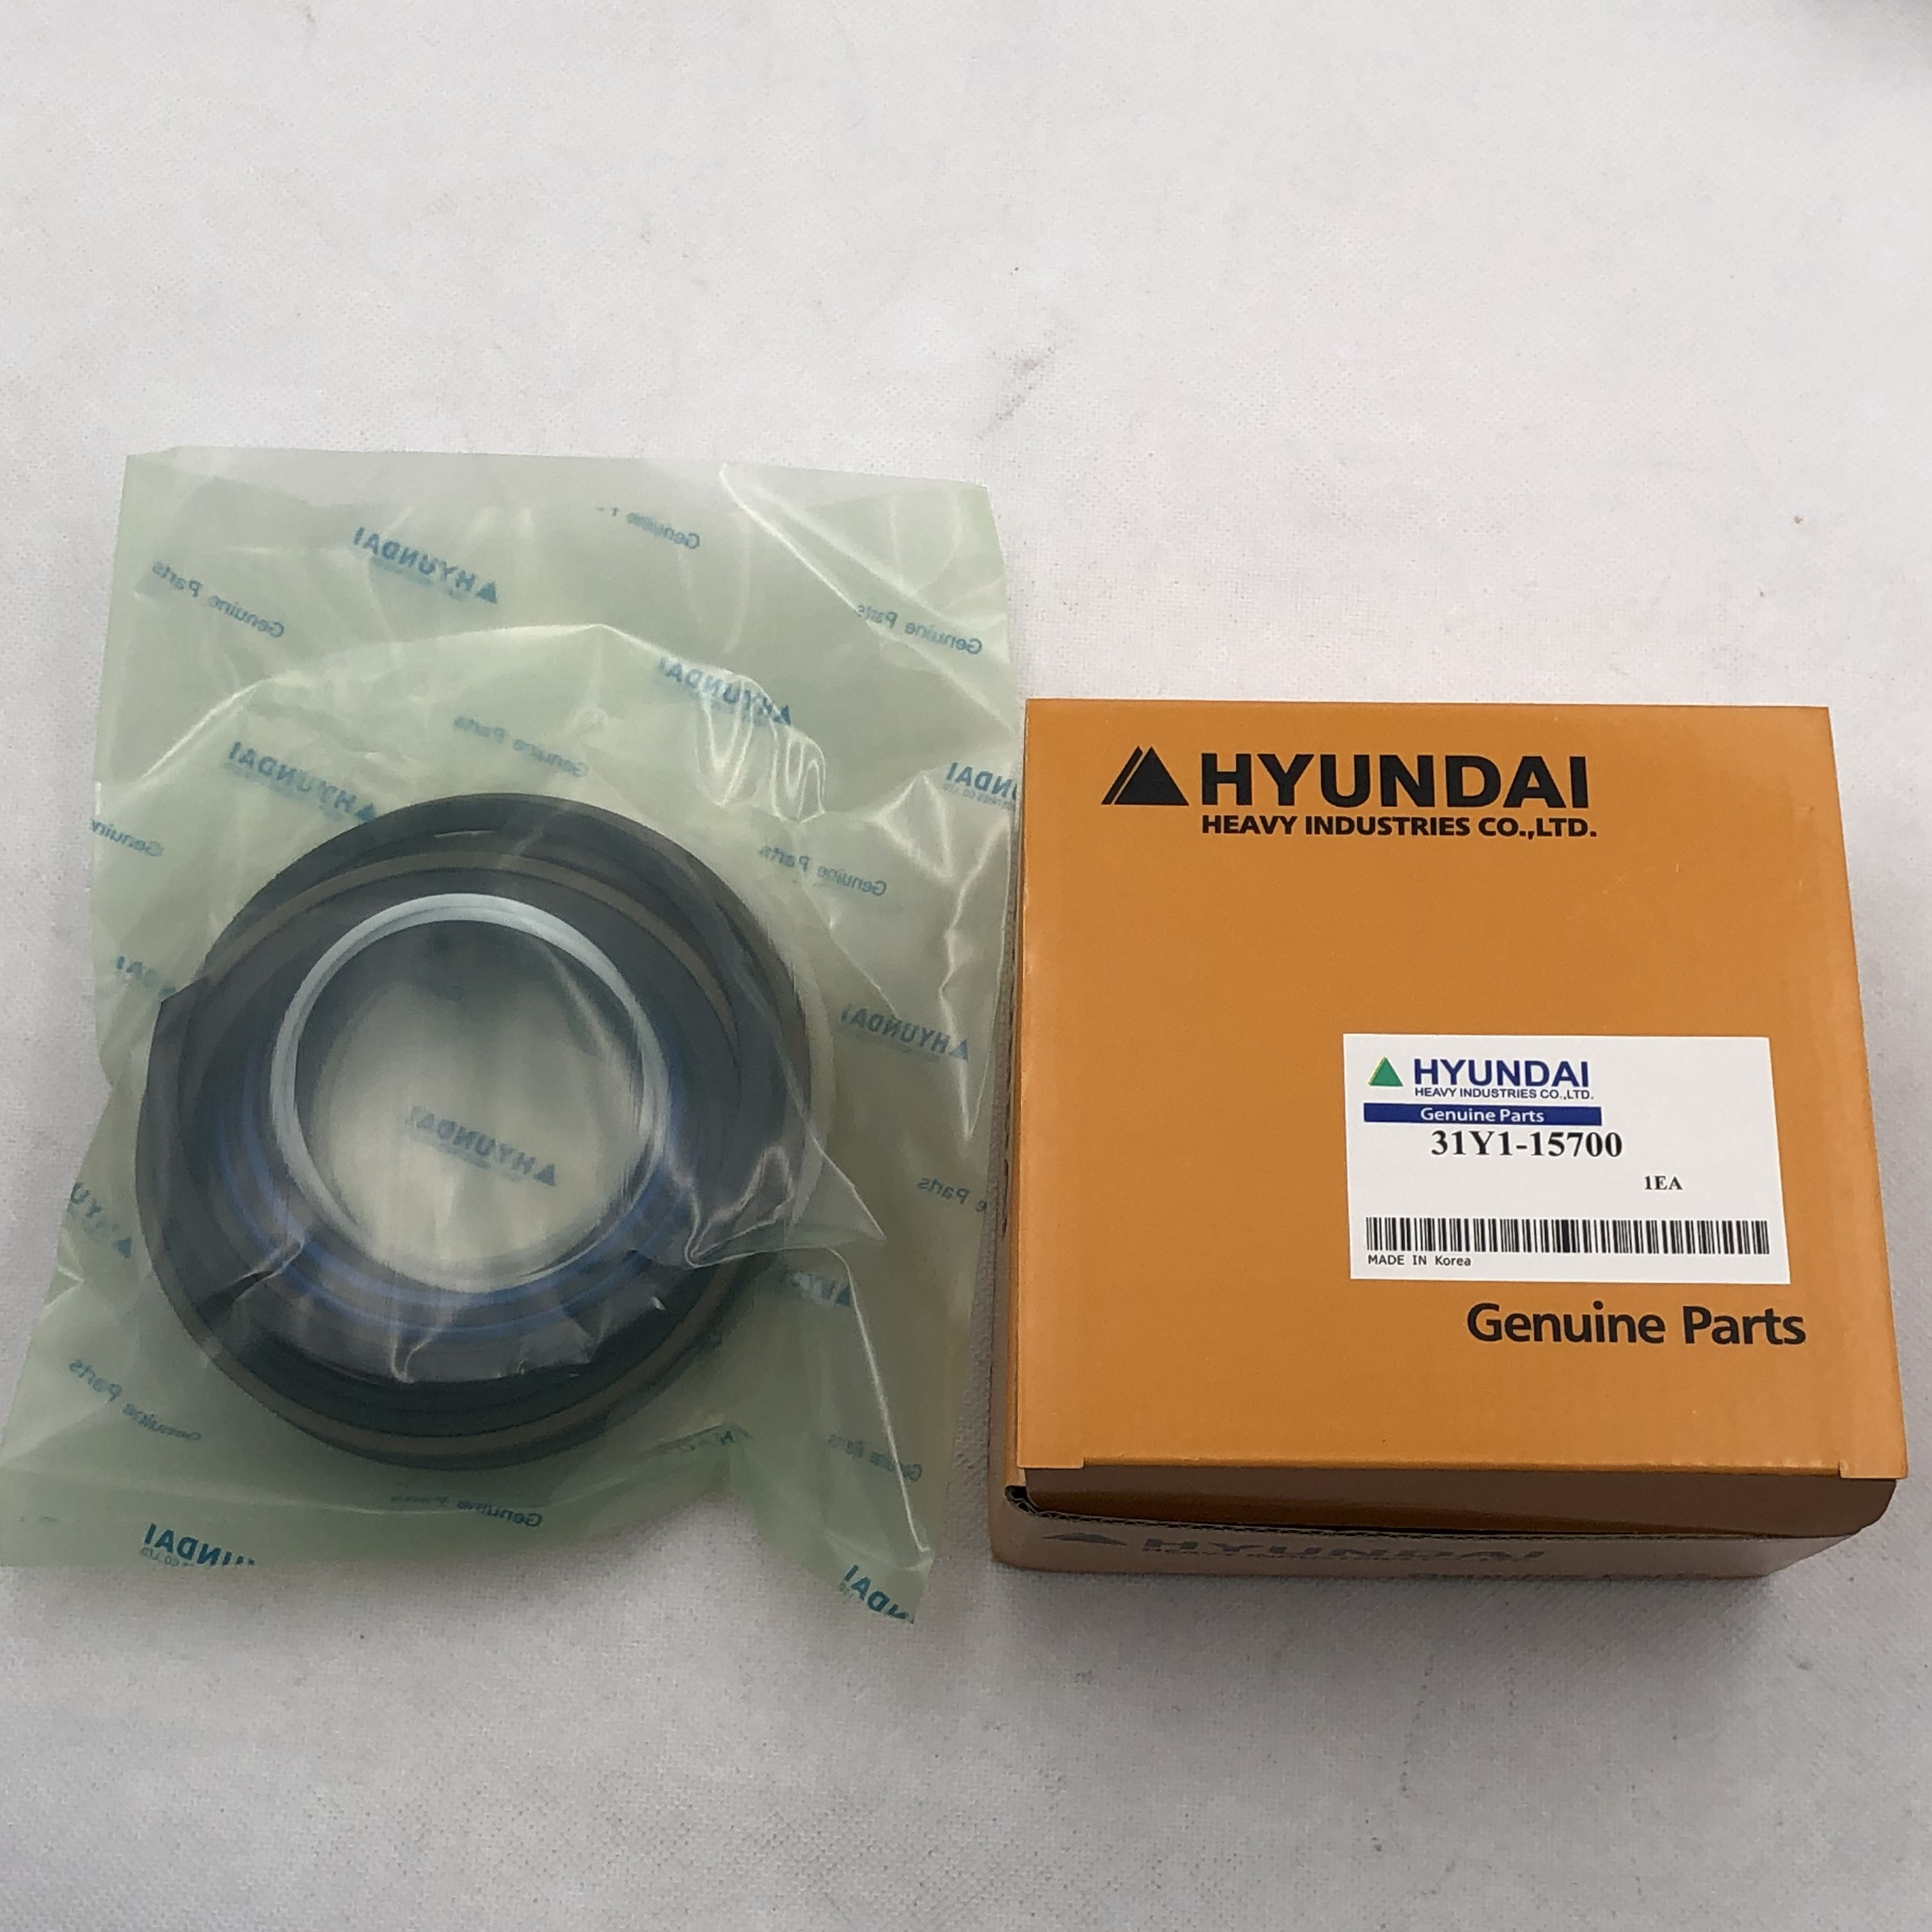 Disseal Excavator Hydraulic Control Valve Seal kit arm boom bucket seal kits for Hyundai 31Y1-15230 31Y1-15880 31Y1-15700